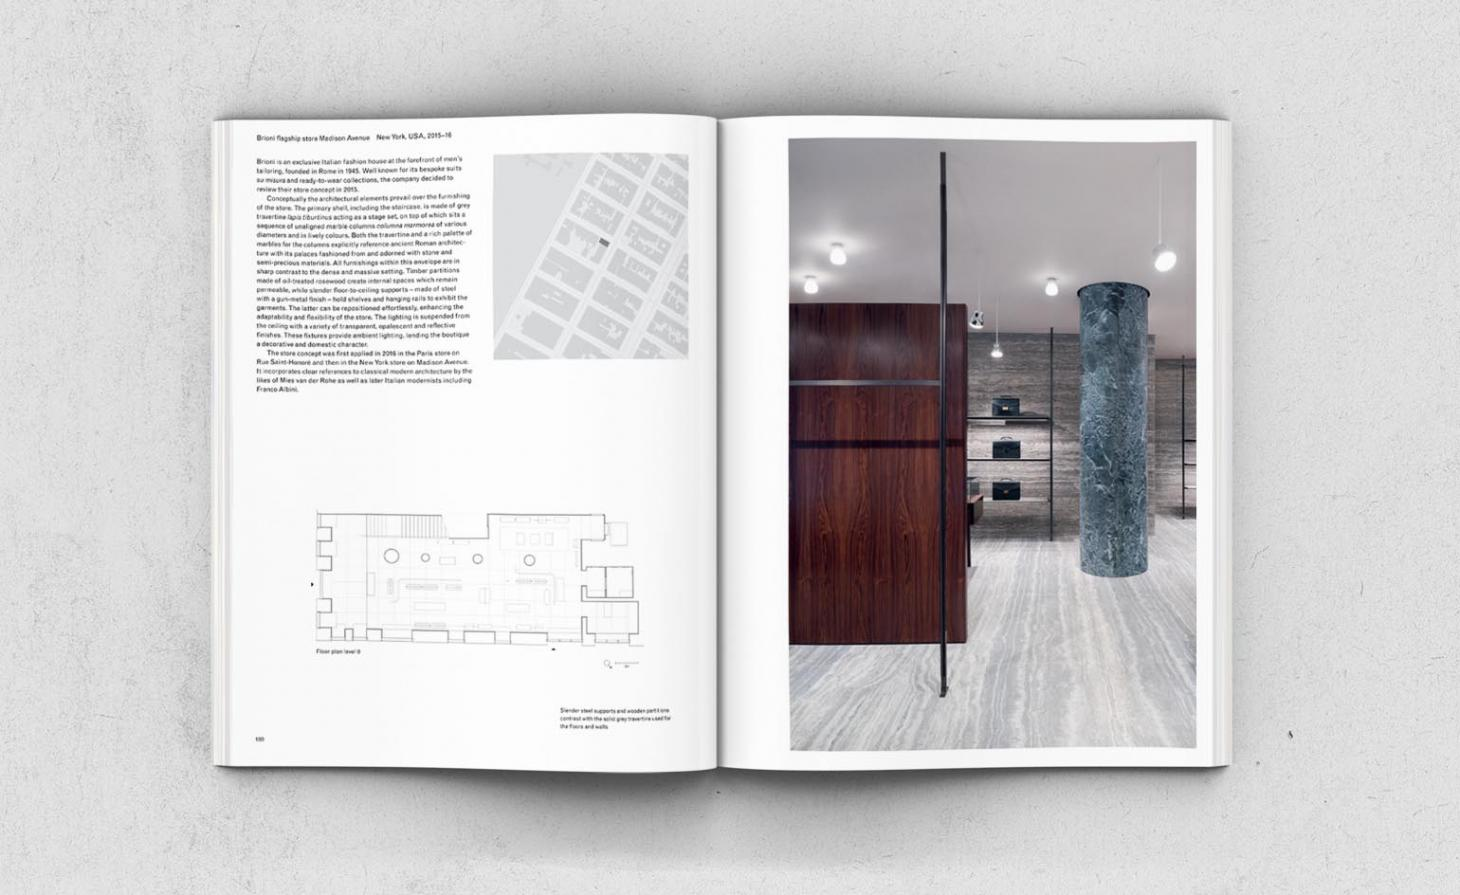 David Chipperfield monograph